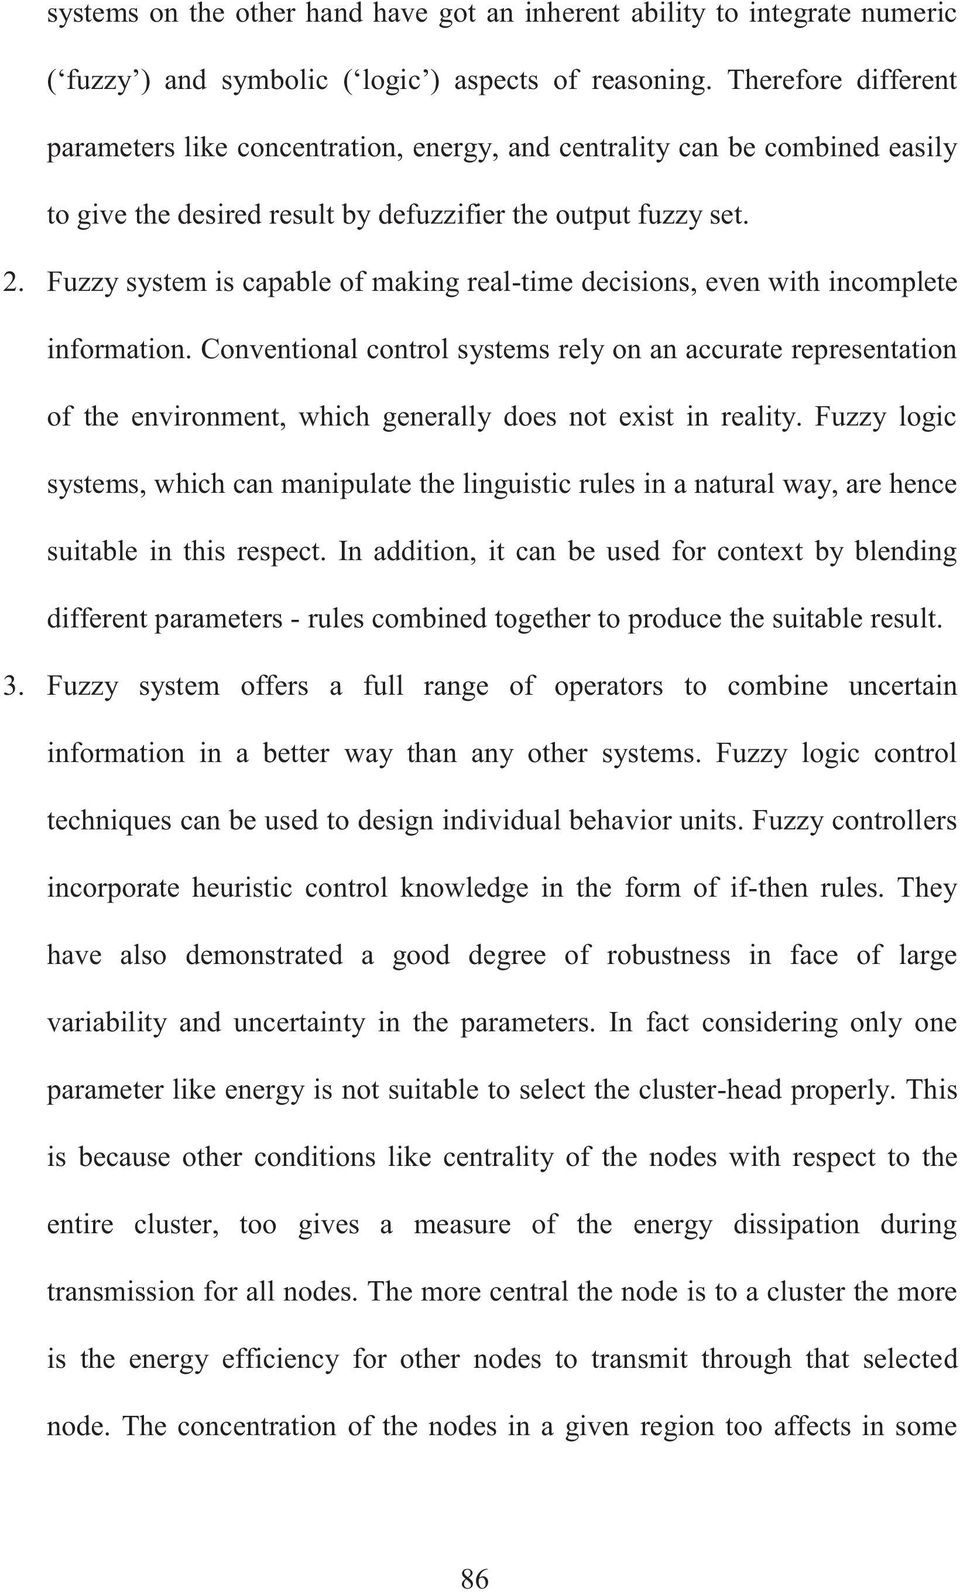 Fuzzy system is capable of making real-time decisions, even with incomplete information.